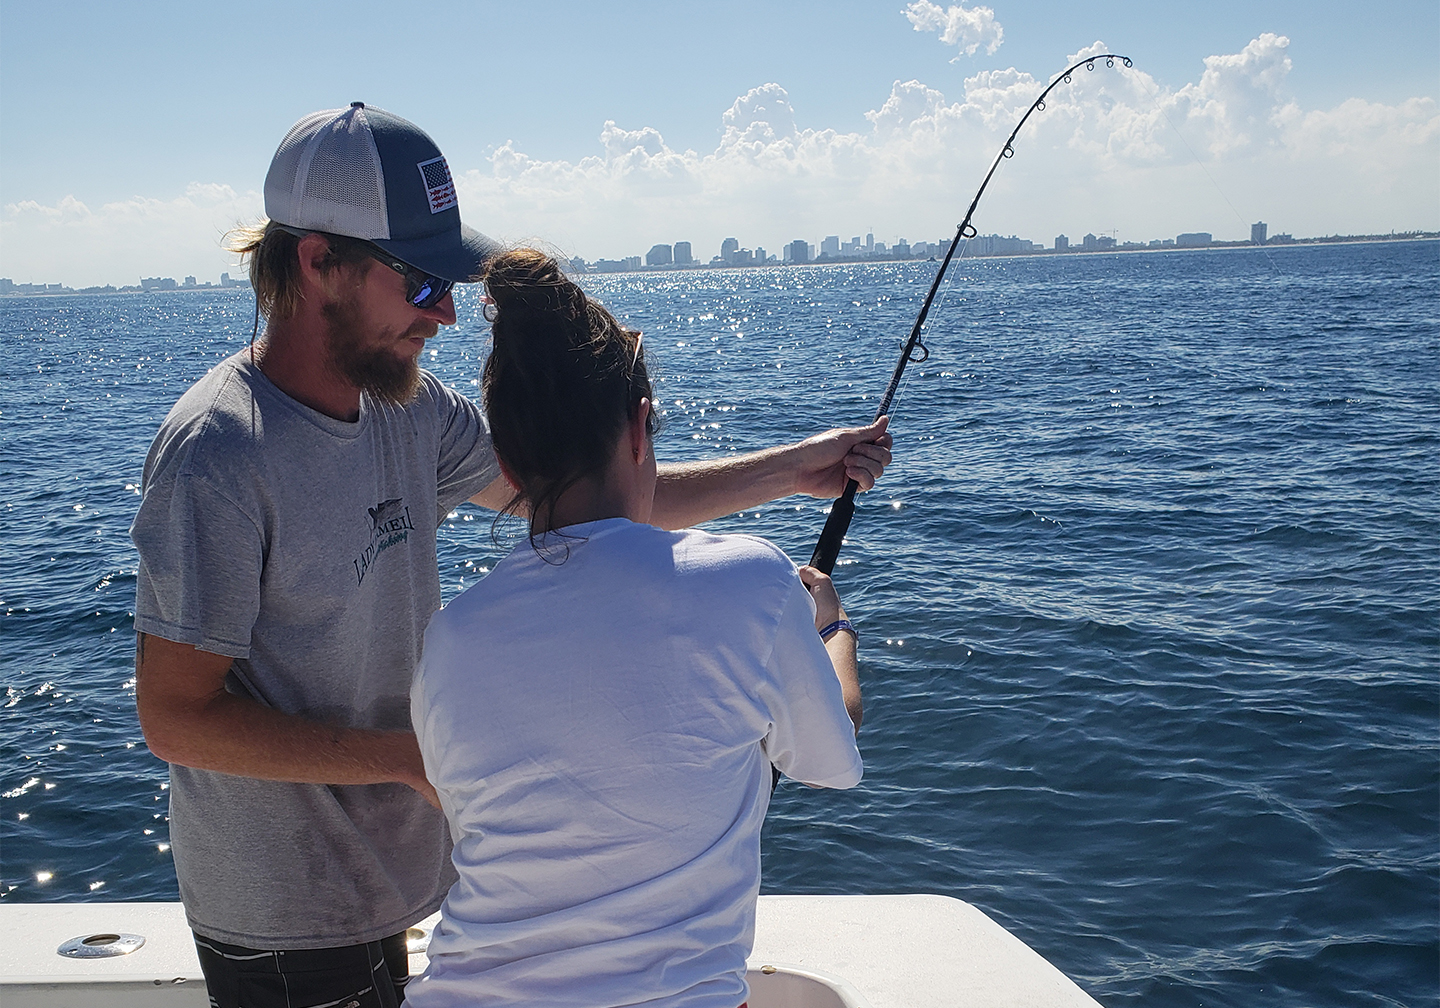 A crew member helping the customer while drift fishing.